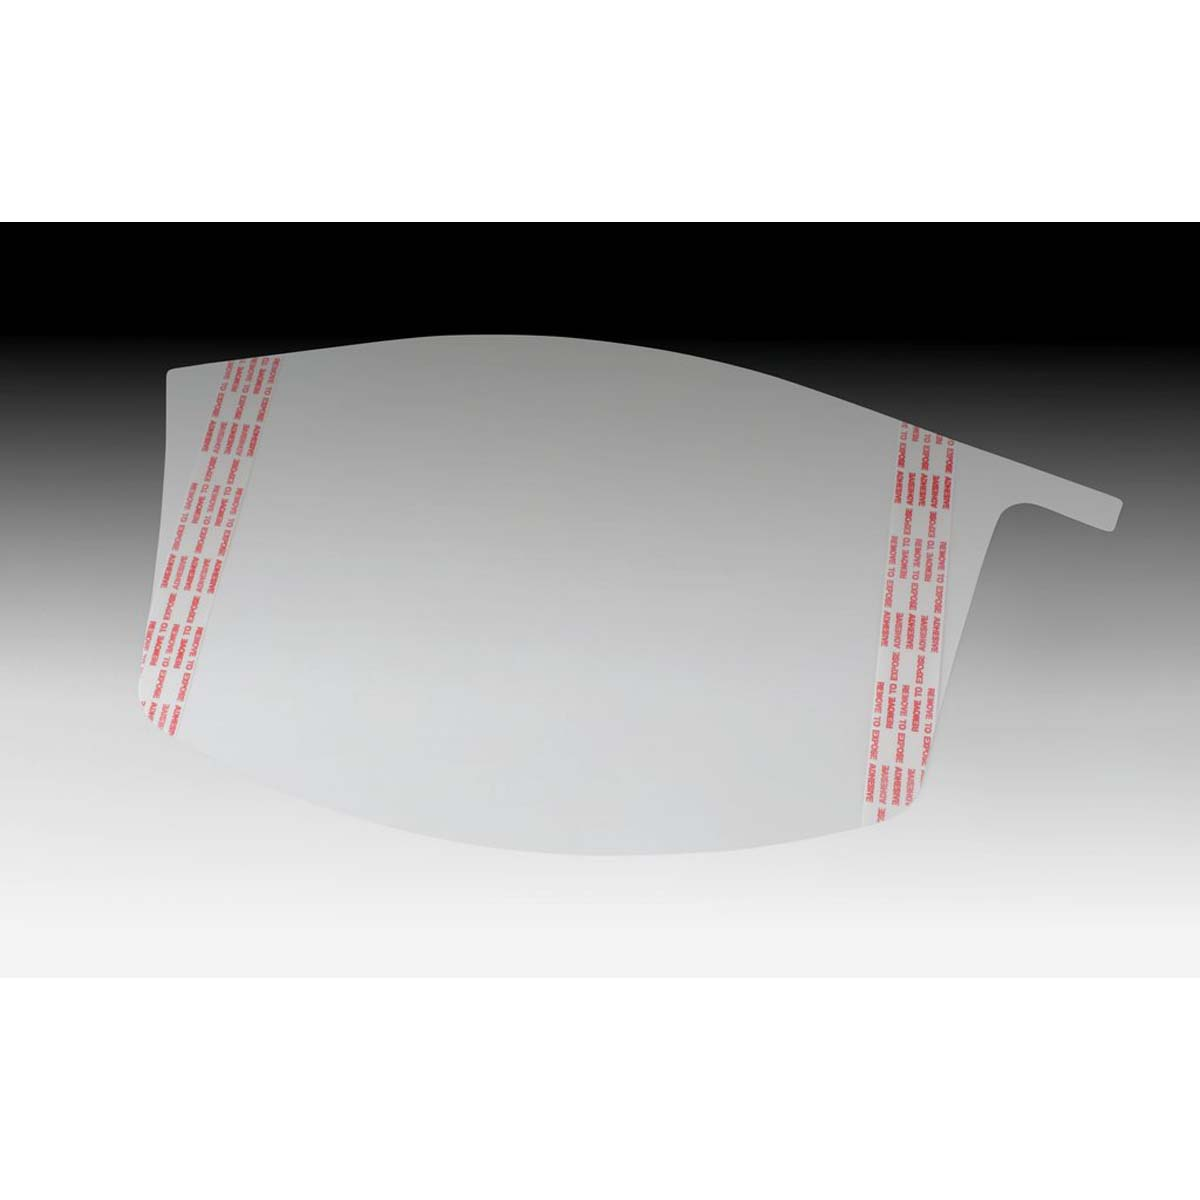 "3Mâ""¢ Versafloâ""¢ Peel-Off Visor Covers M-928/37452(AAD), for M-927 Premium Visor"